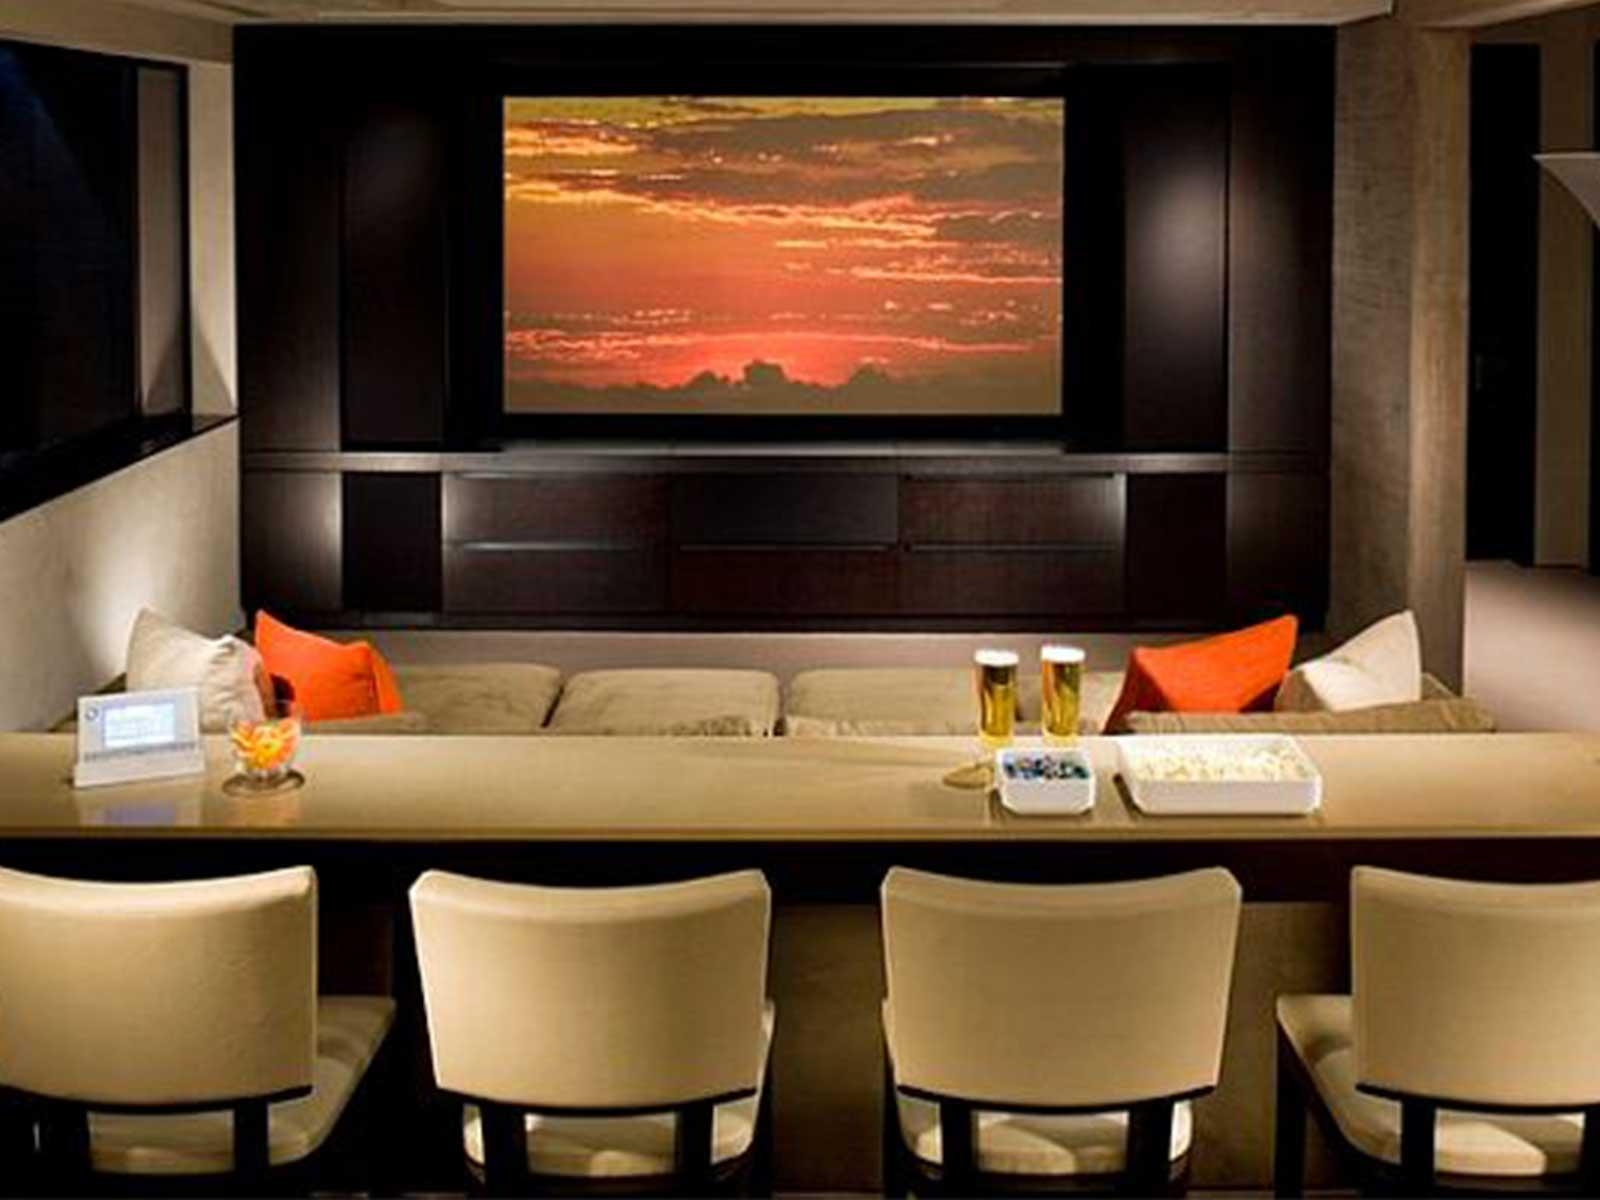 Enchanting Wall Decor Home Theater Decal Design With Art 20 Ideas Of